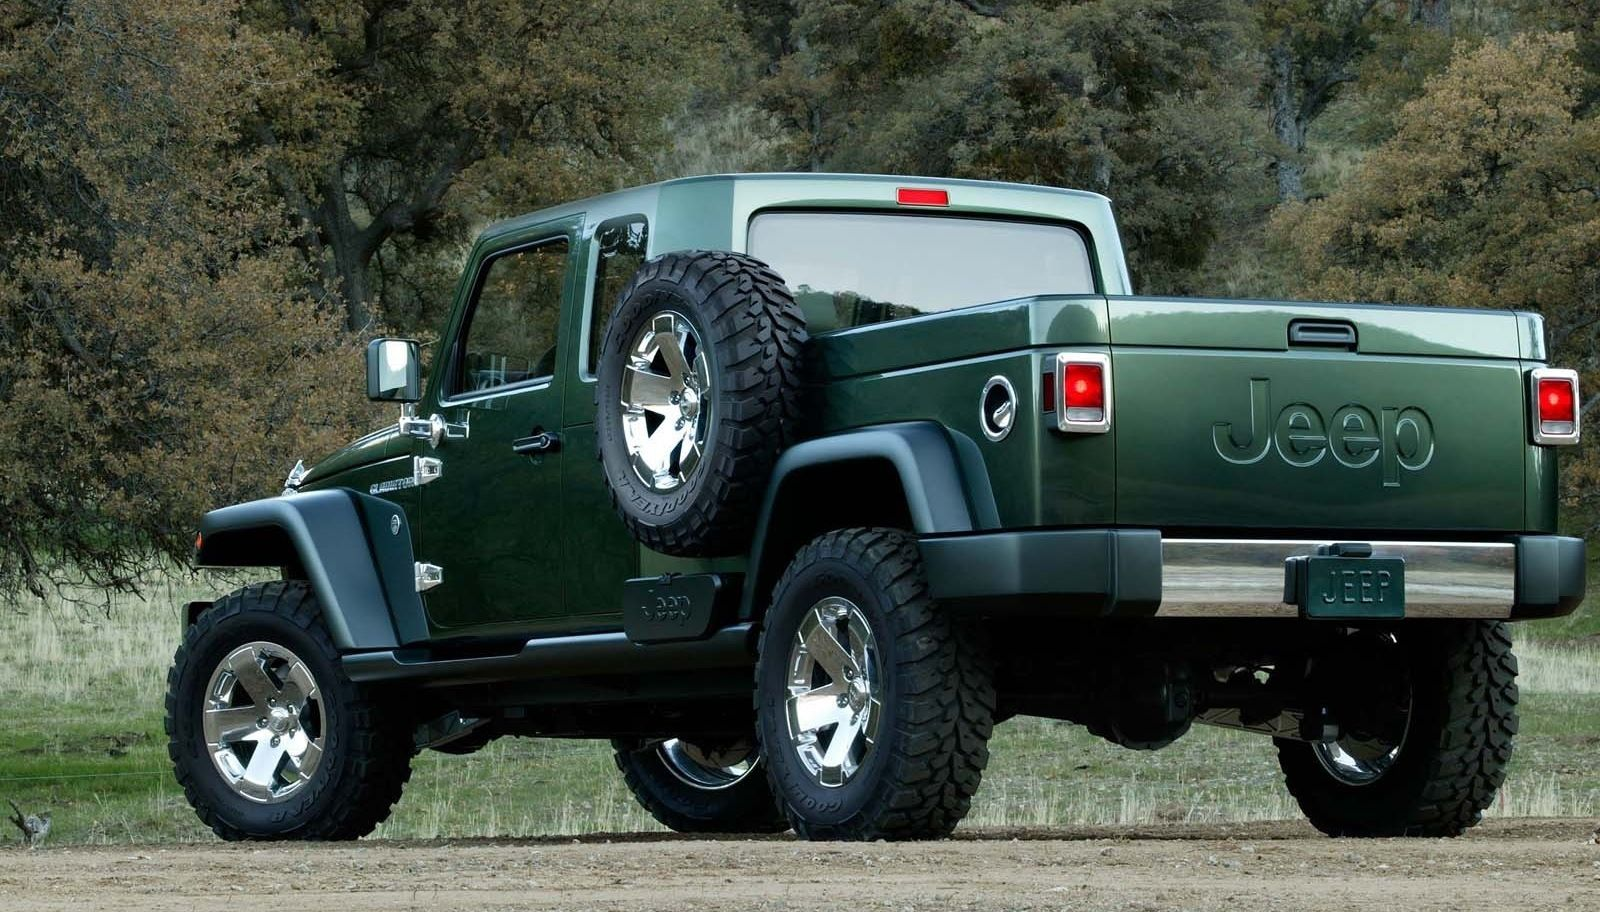 Visual Comparison Between The 2020 Jeep Gladiator And The 2005